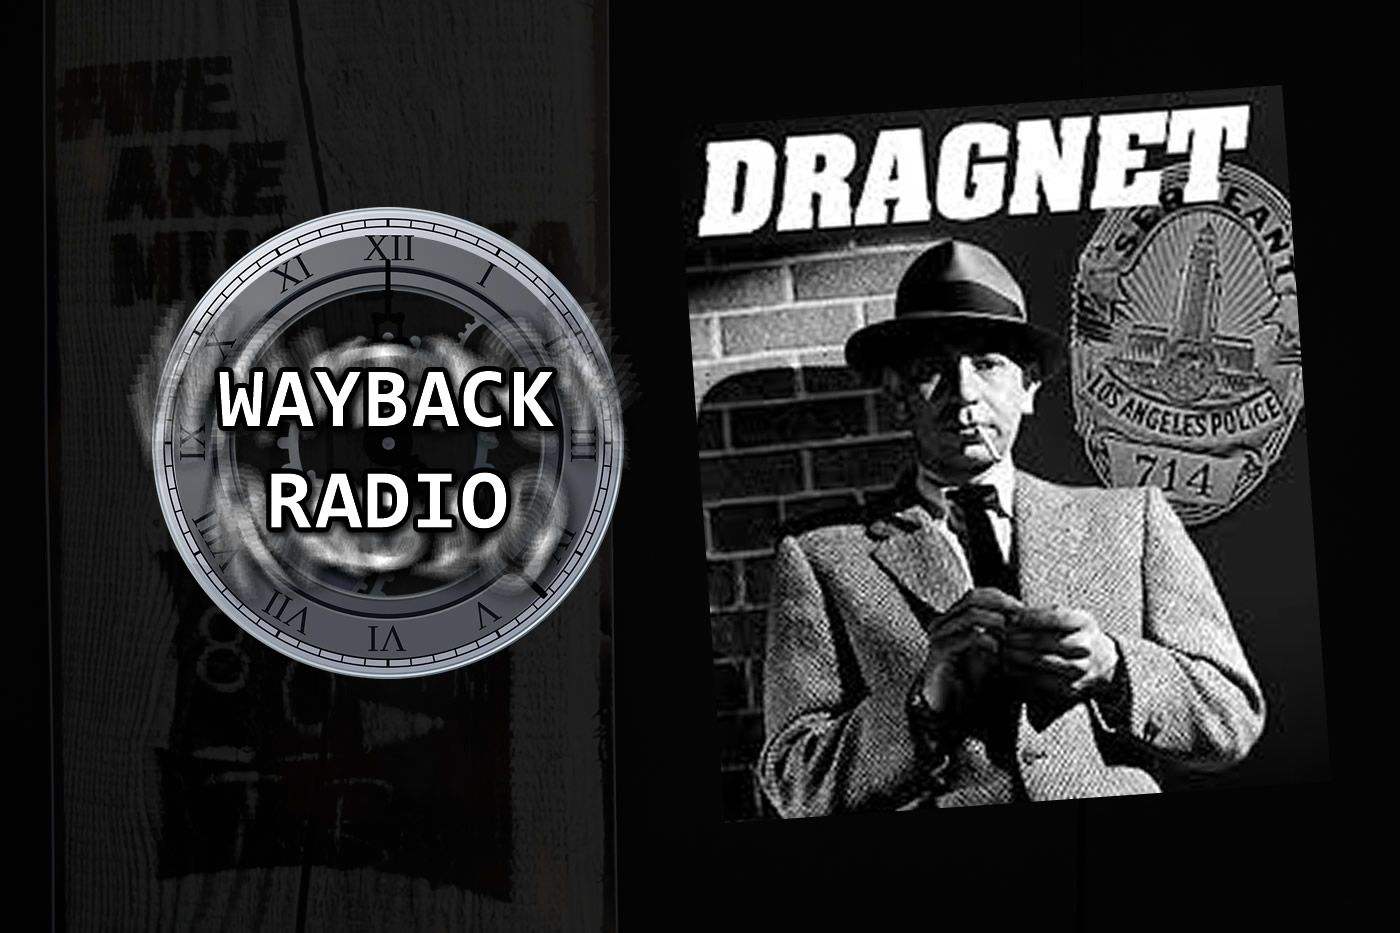 Wayback Radio - DRAGNET